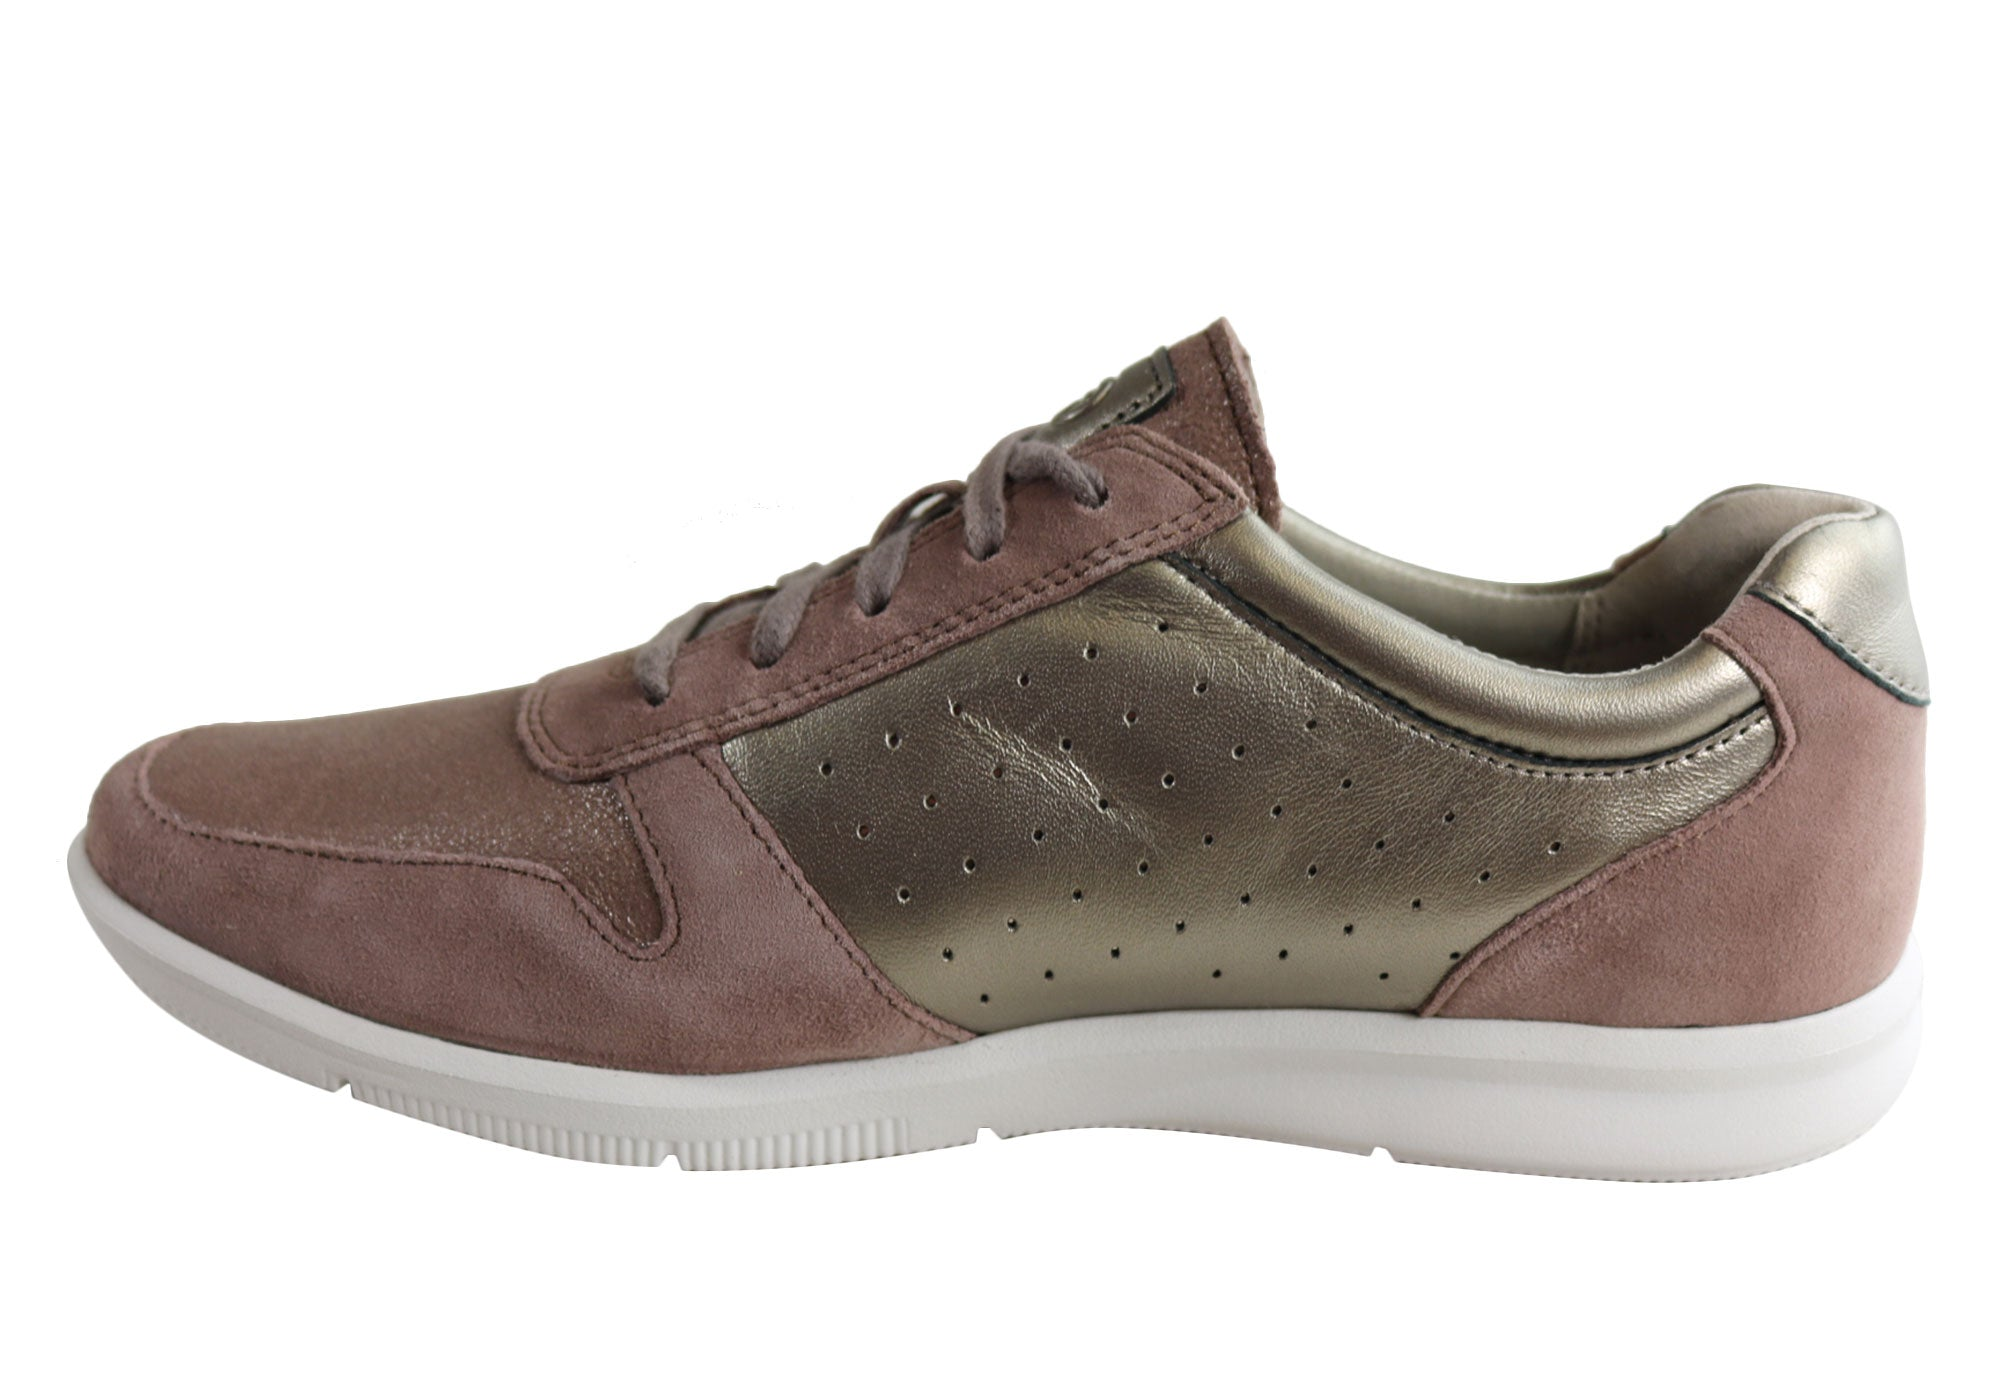 Rockport Womens City Lite Ayva Tie Leather Comfortable Casual Shoes